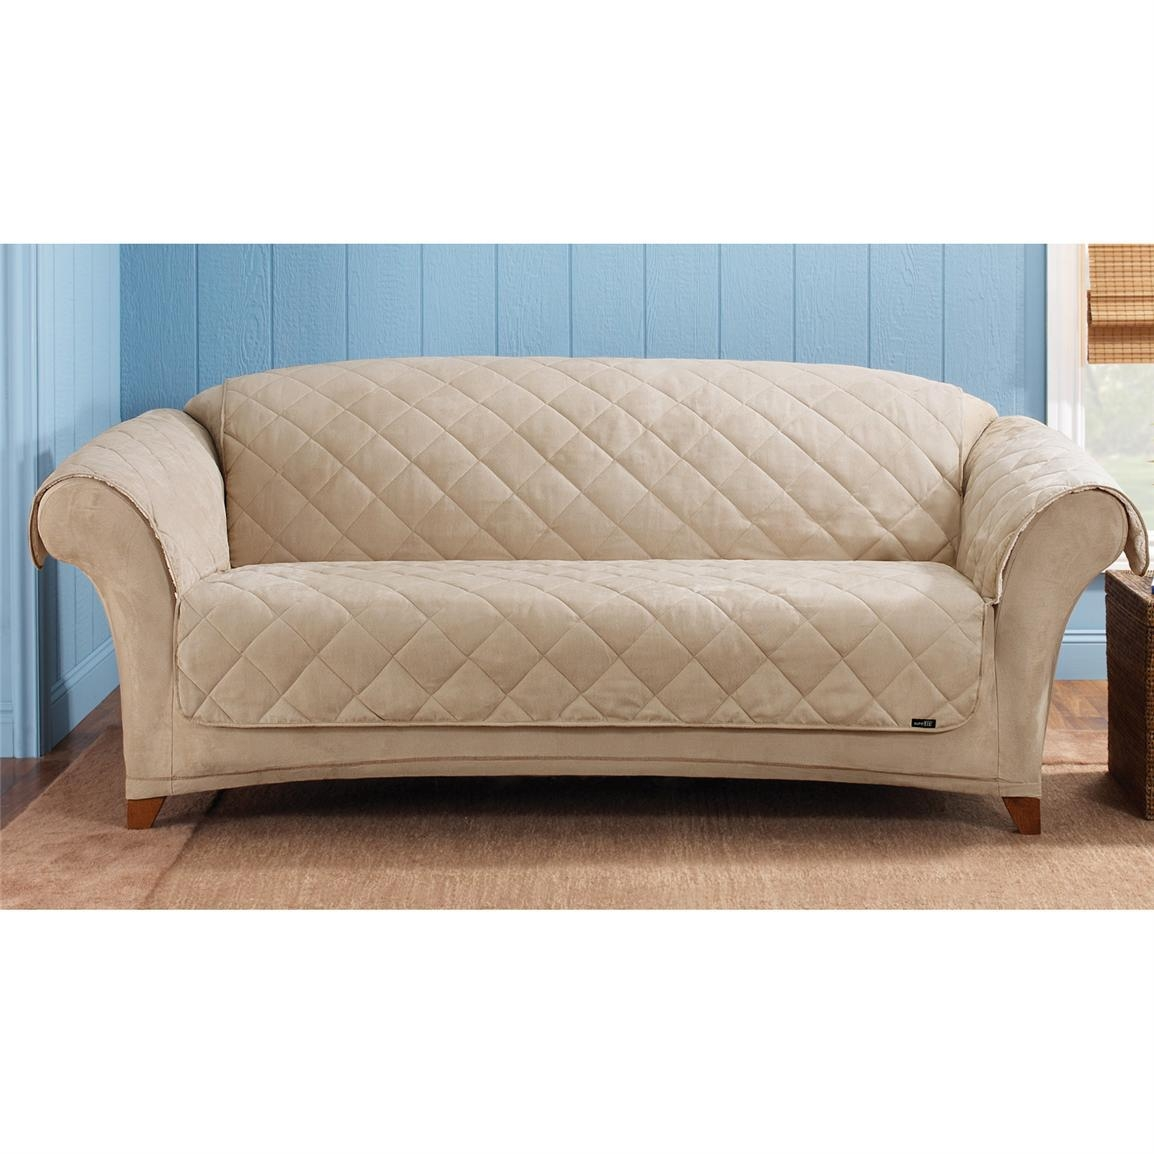 Sofa And Armchair Covers Armchair Covers